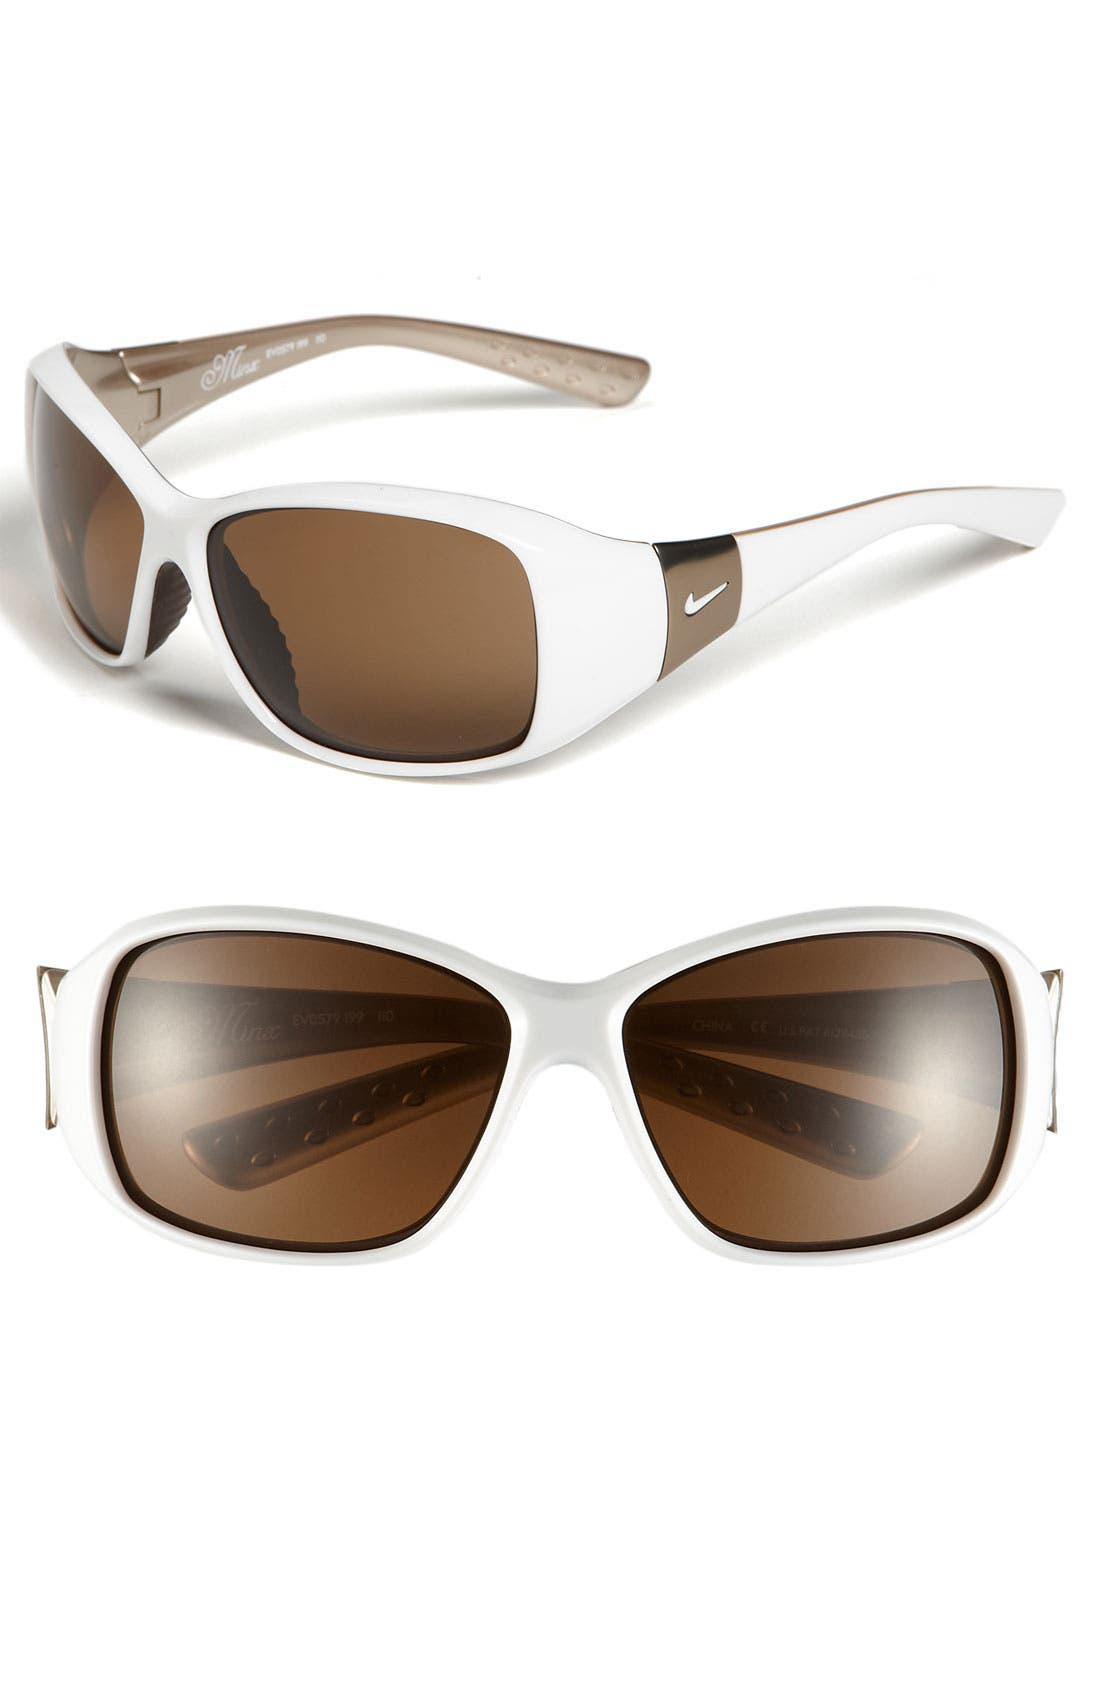 Main Image - Nike 'Minx' 59mm Sunglasses